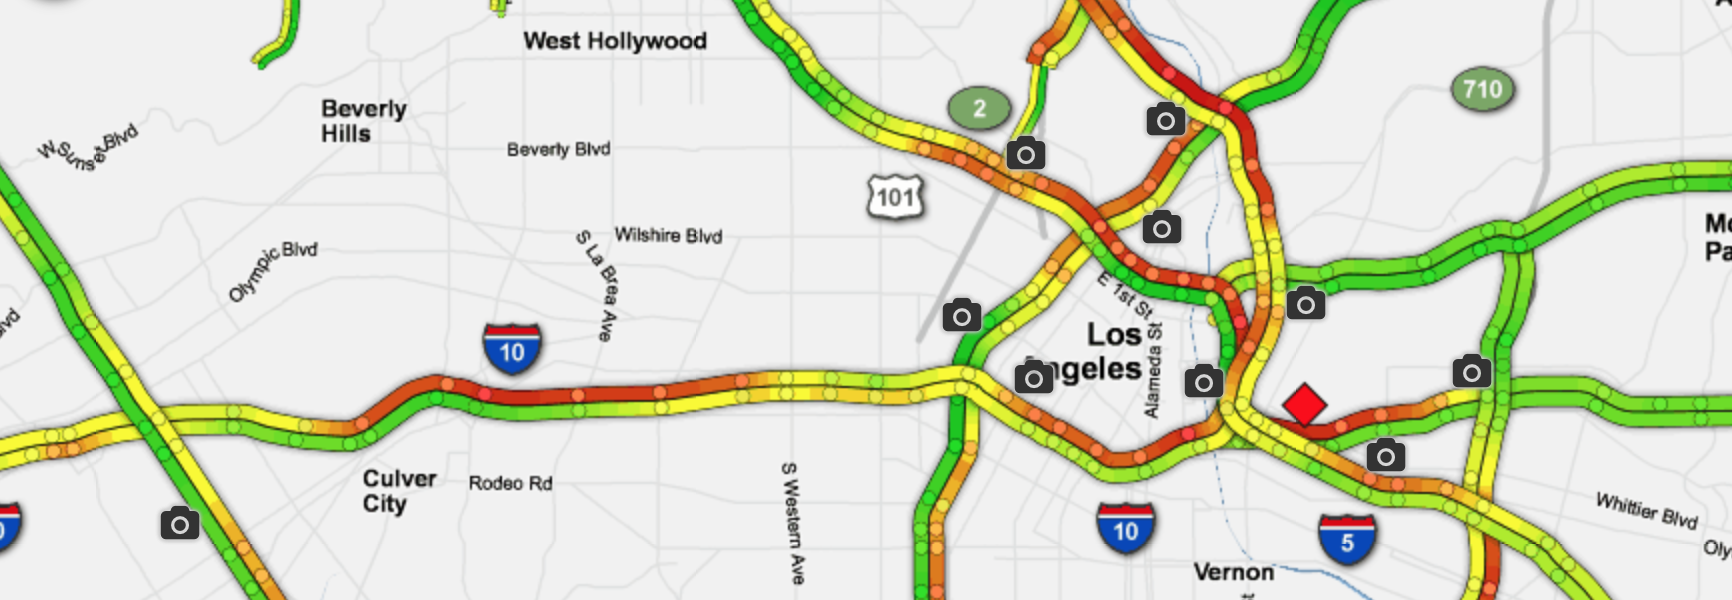 The LA freeway with the most Sigalerts